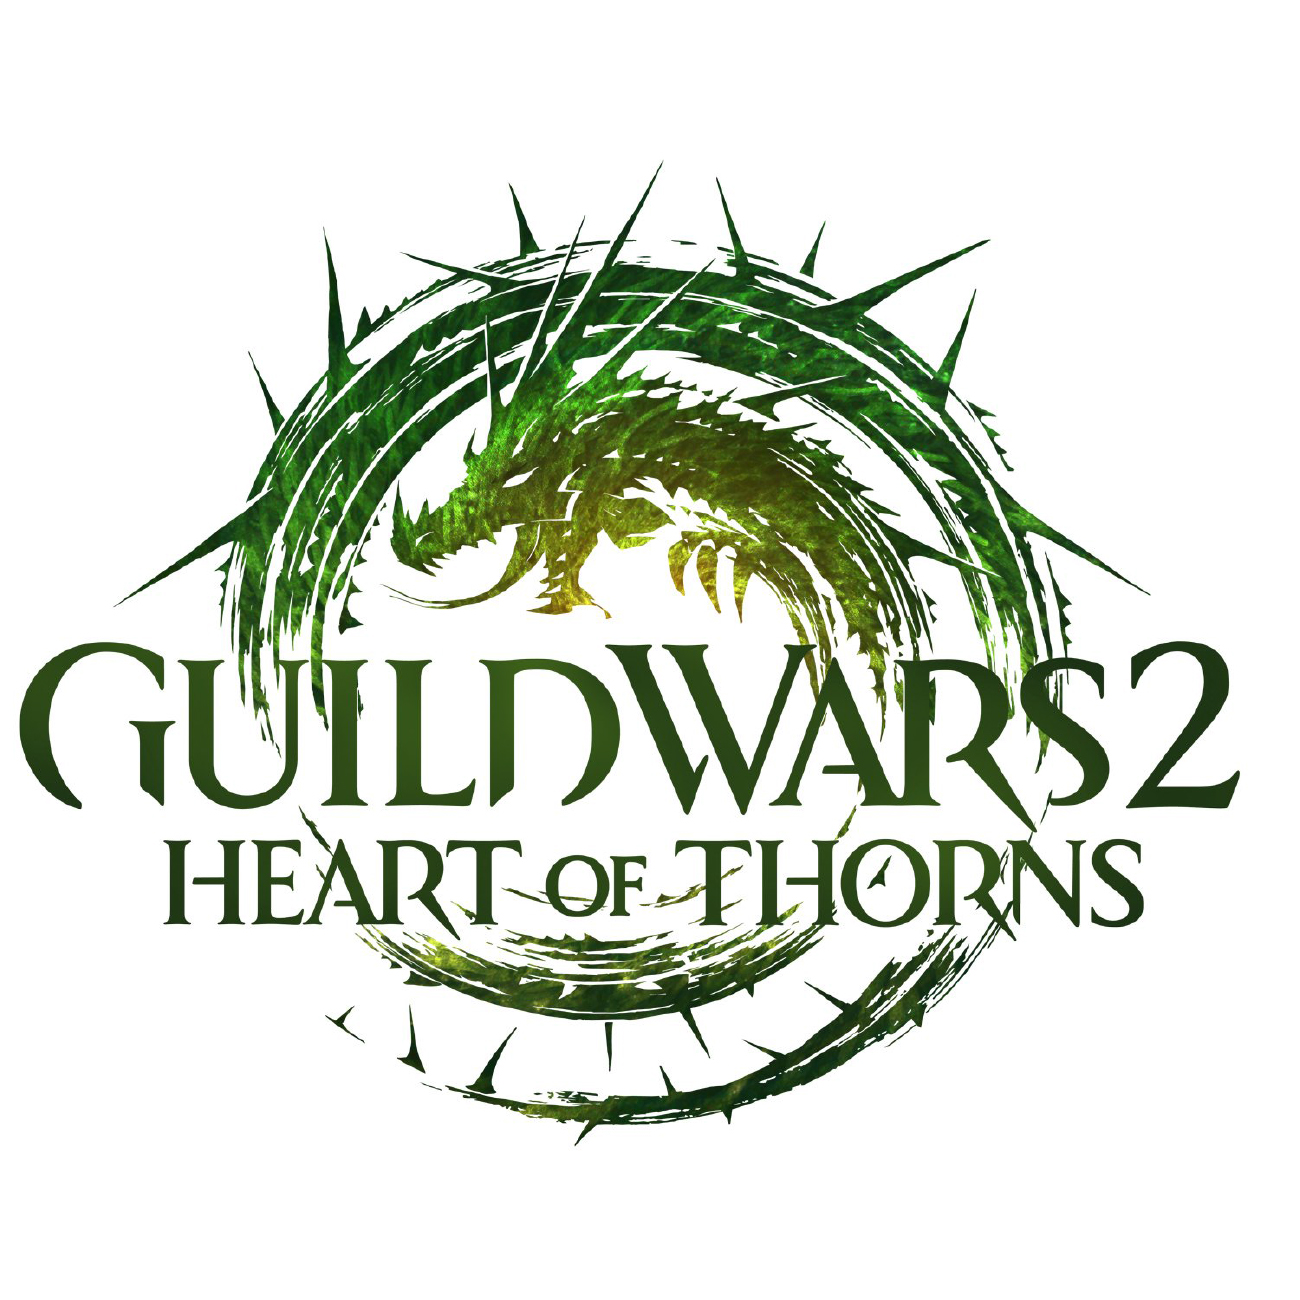 1421144230-guild-wars-2-heart-of-thorns